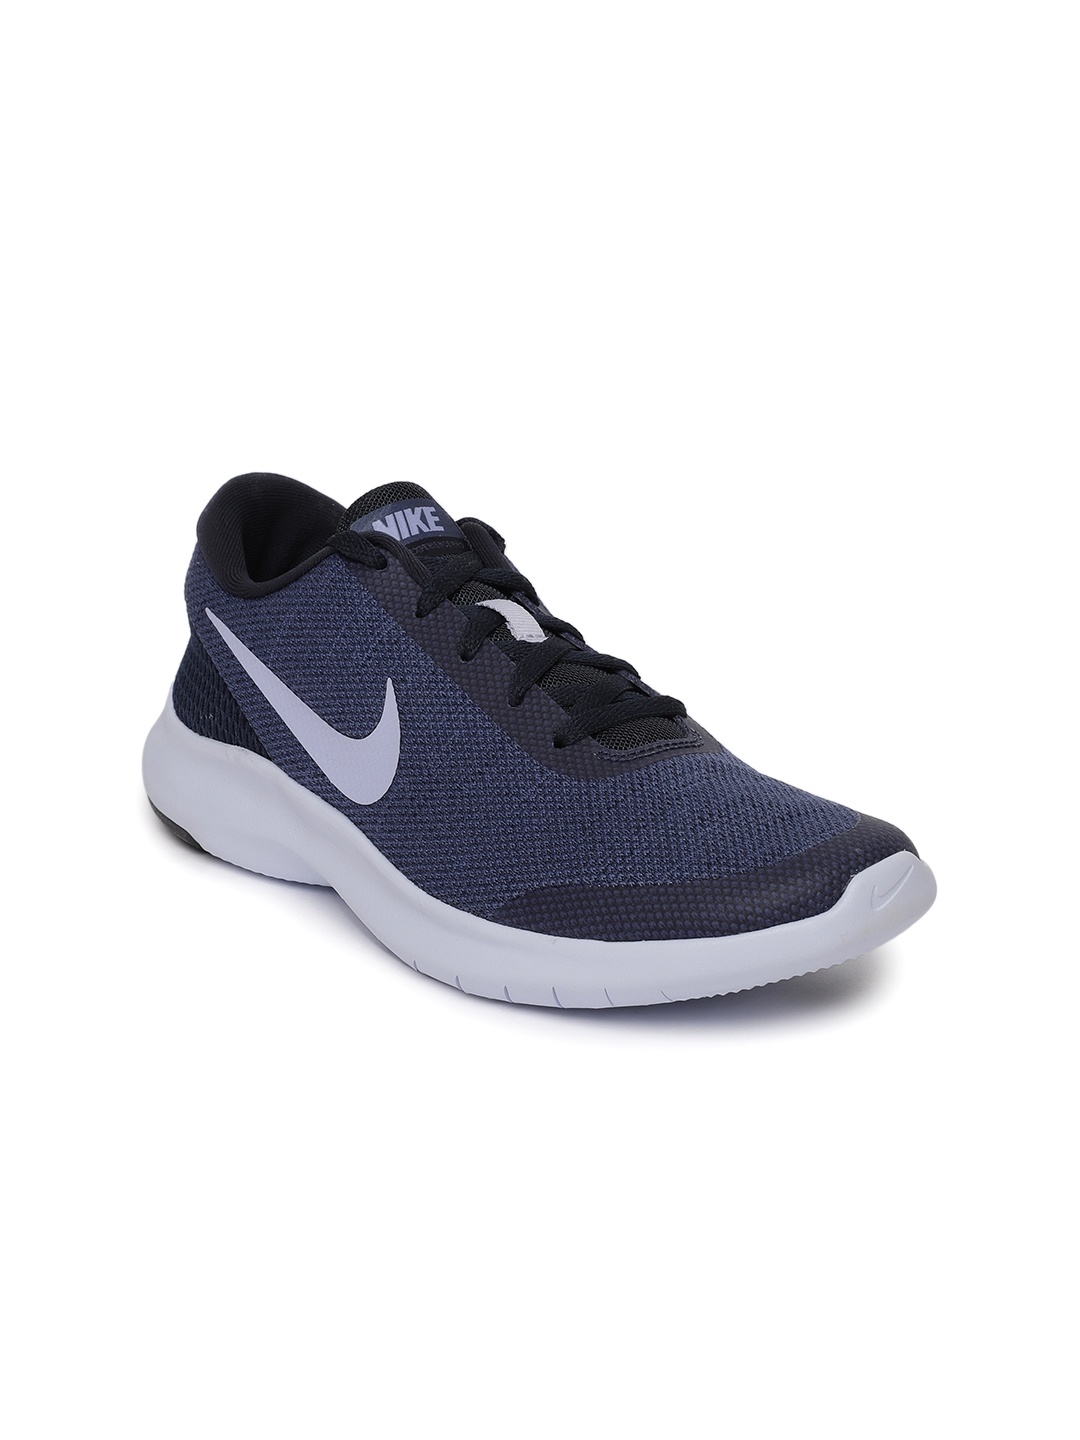 36ca4cd135751 Buy Nike Women Blue Flex Experience RN 7 Running Shoes - Sports ...